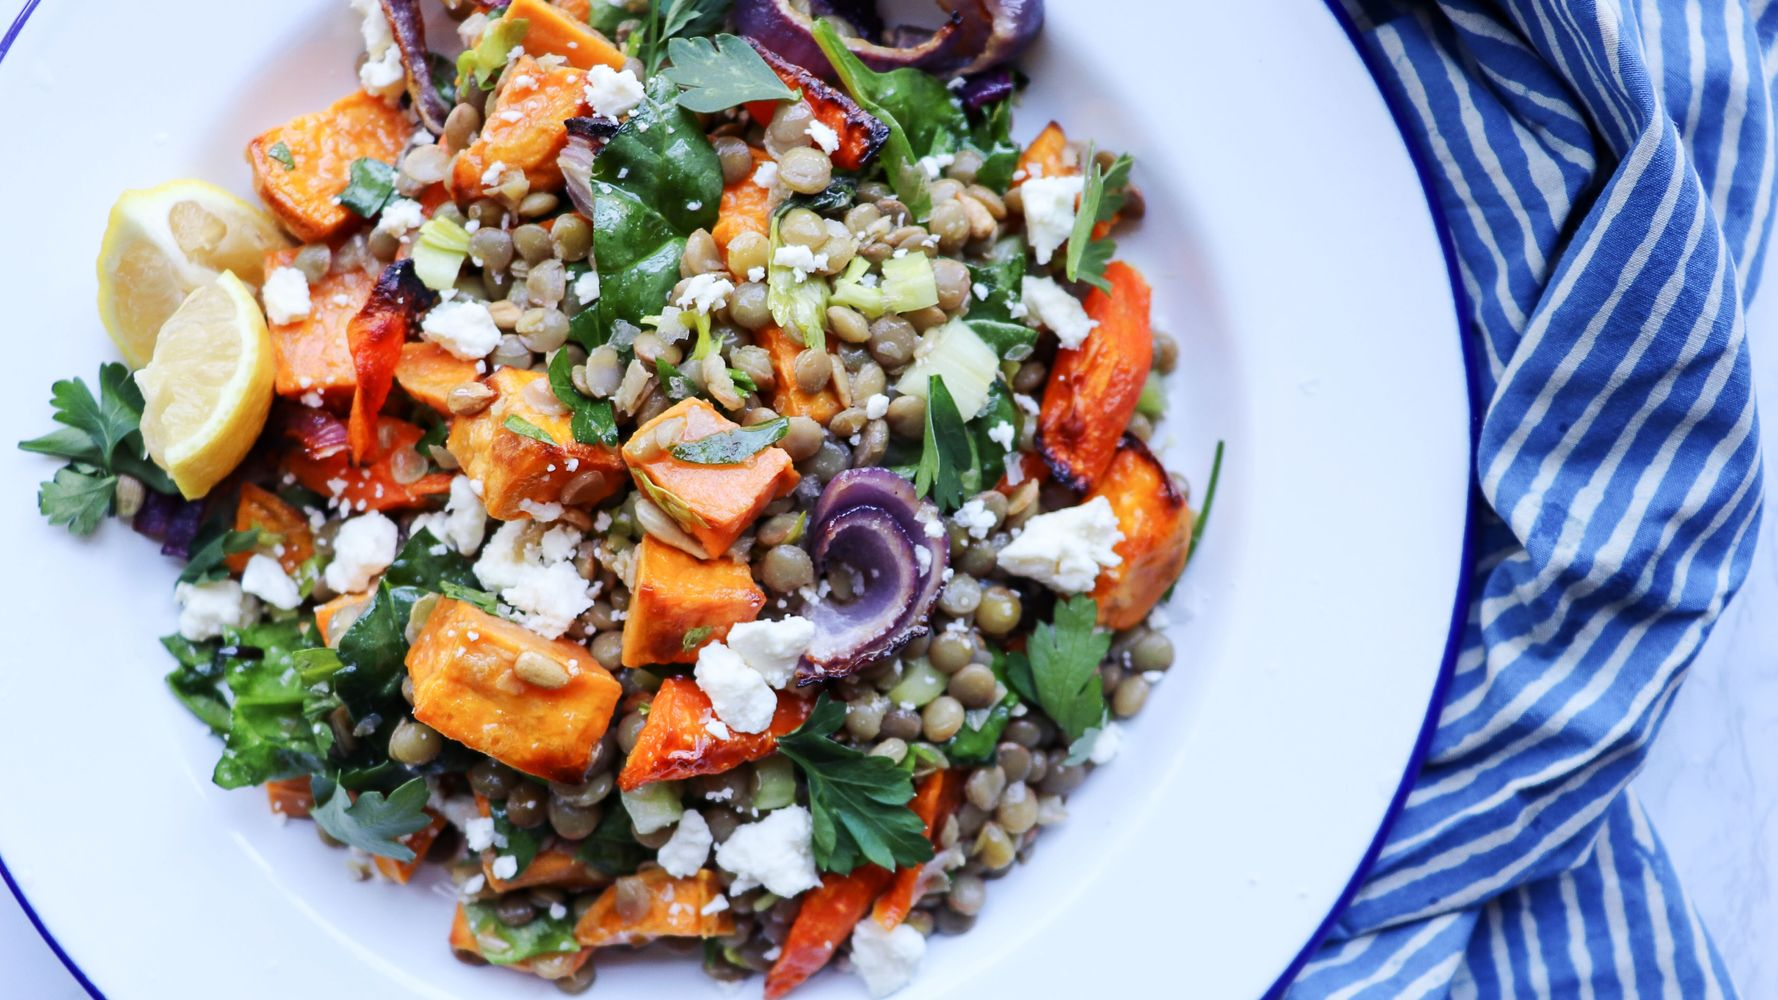 Cheap Eats: How To Turn A Bag Of Lentils Into 3 Delicious Meals